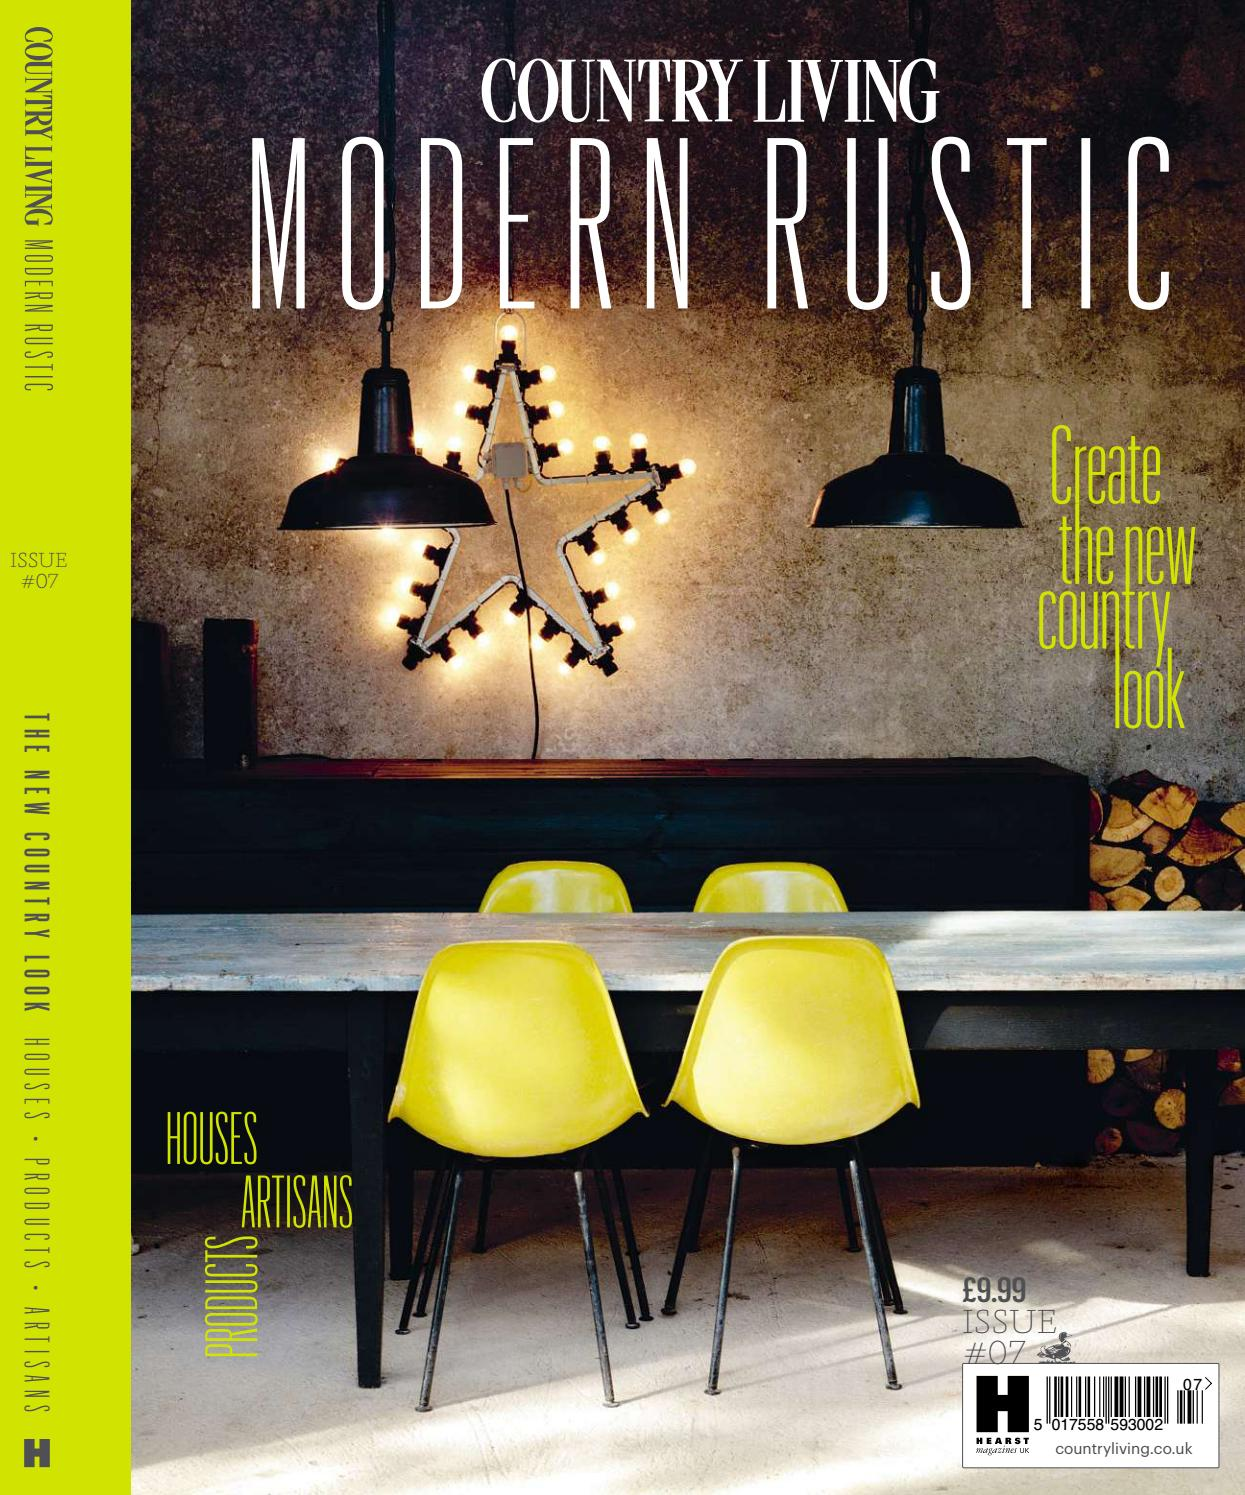 country living modern rustic feature issue 07 by jamie blake issuu. Black Bedroom Furniture Sets. Home Design Ideas